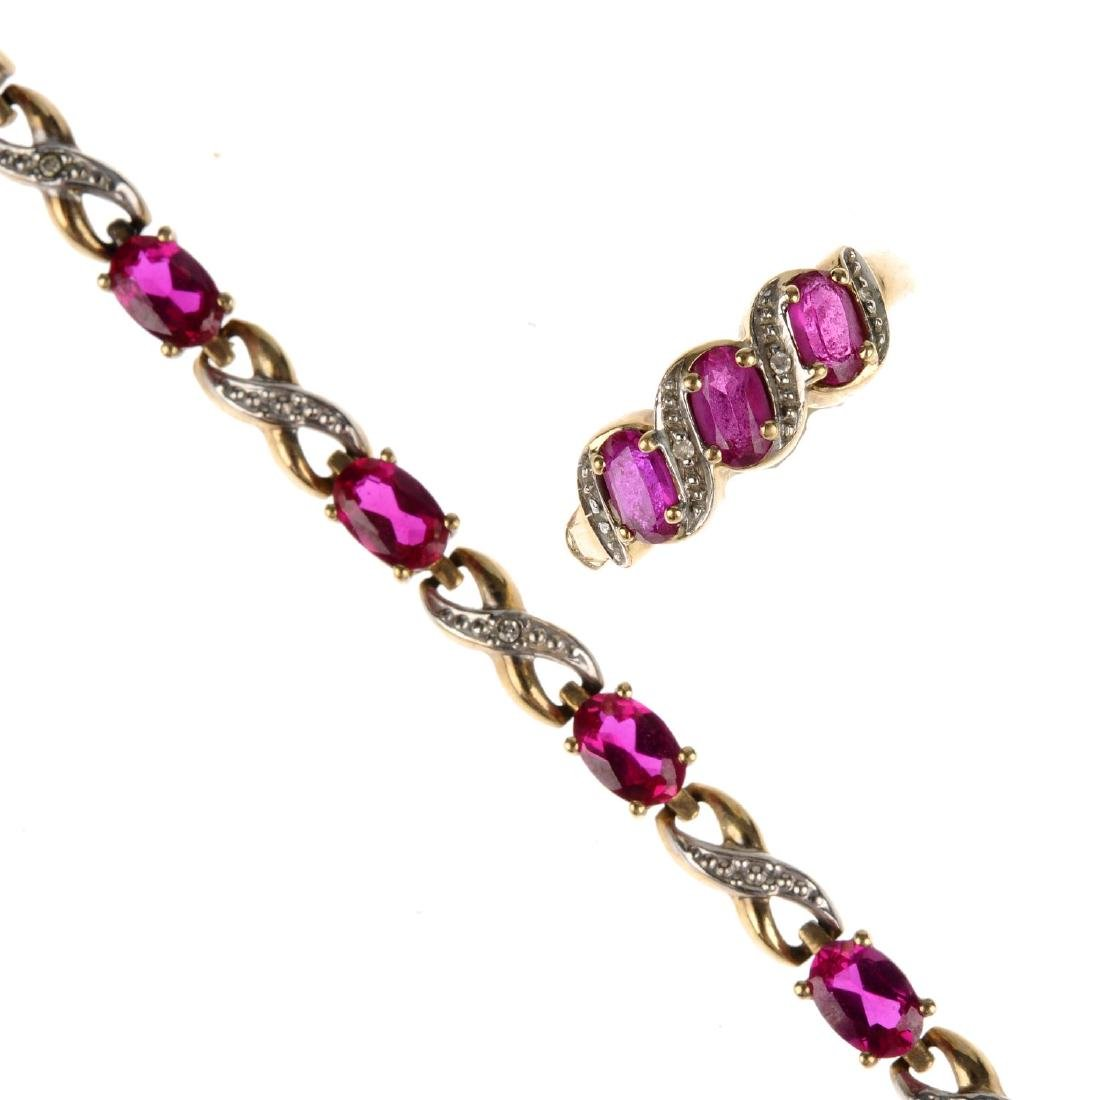 A synthetic ruby and diamond bracelet and ring. The